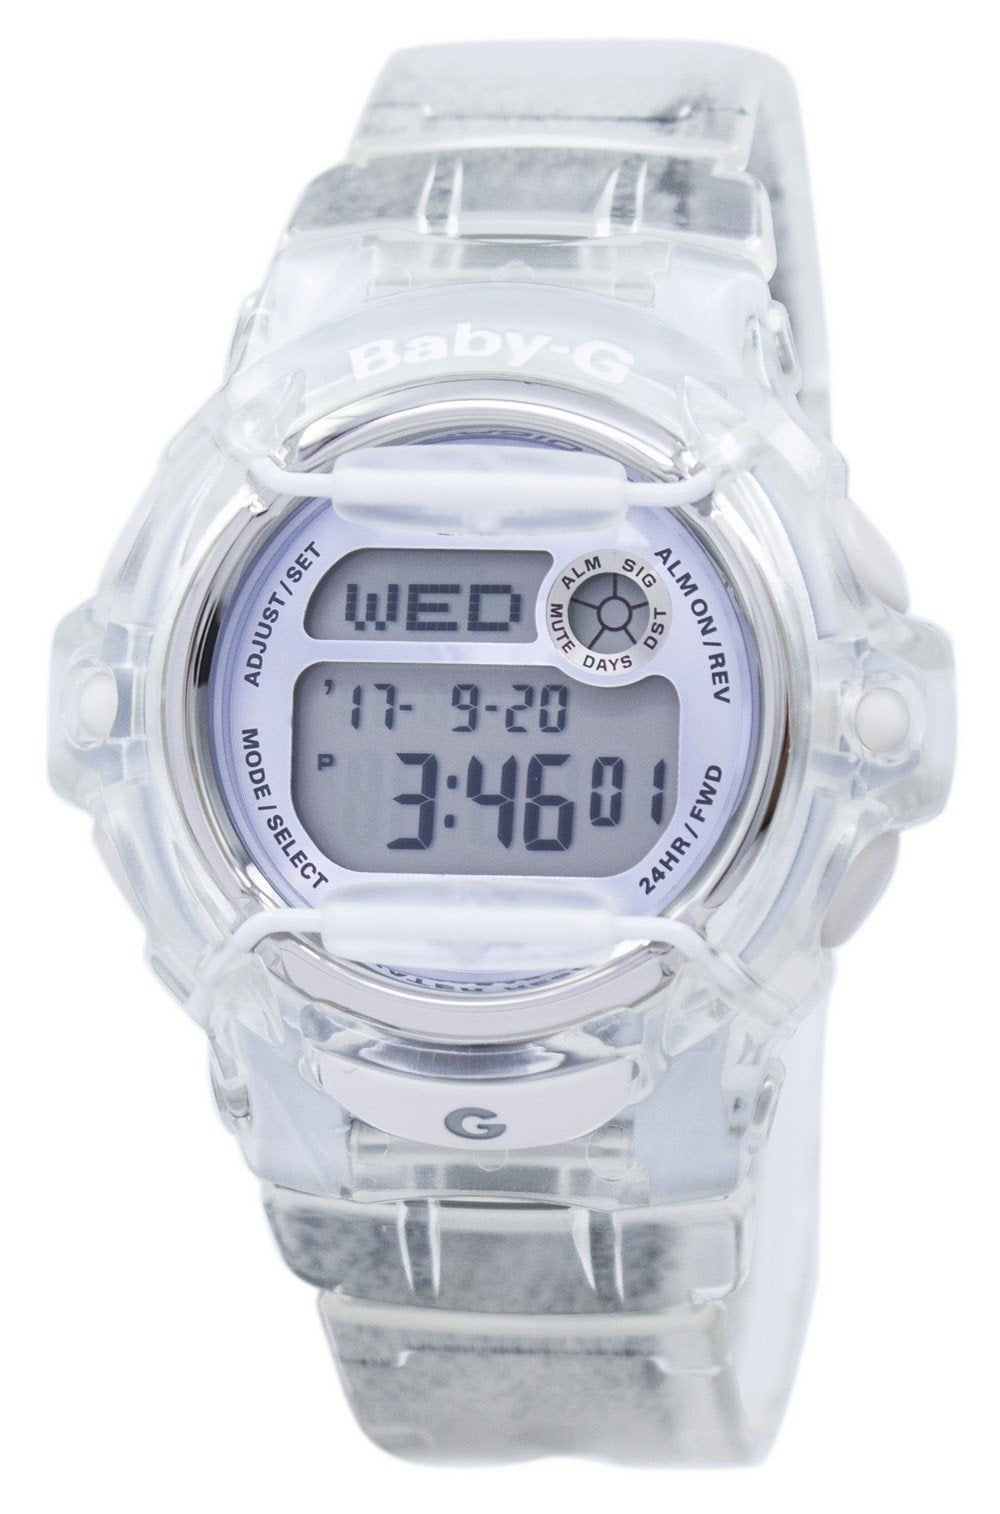 Casio Baby-G Shock Resistant Digital World Time Quartz BG-169R-7E BG169R-7E Women's Watch